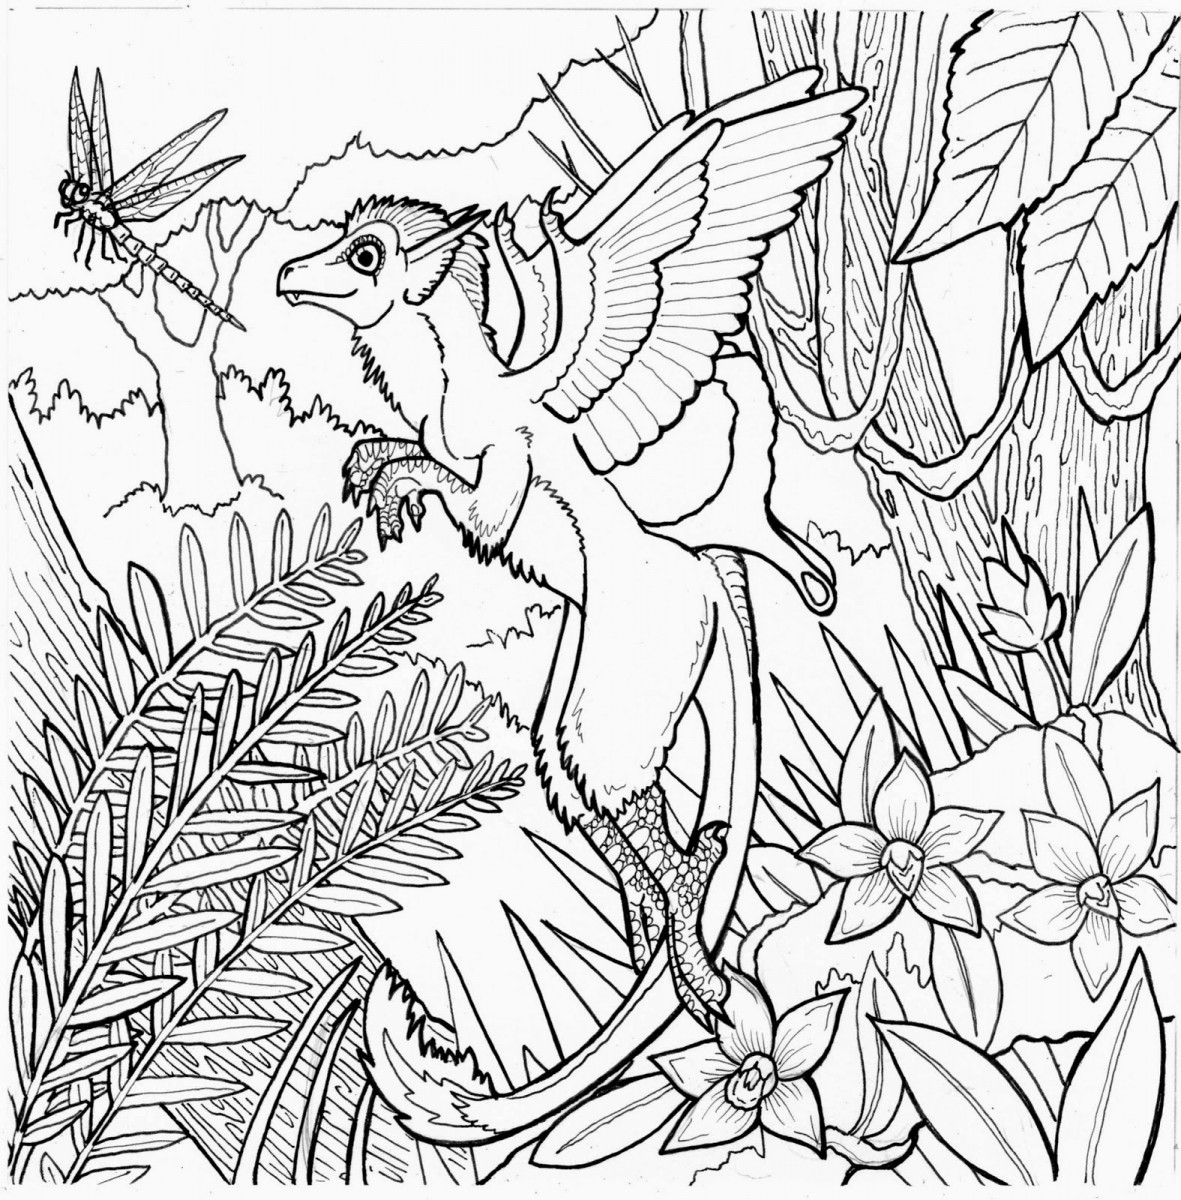 Coloring Pages Rain Forest Coloring Pages rain forest coloring pages eassume com 9 most endangered rainforest animals animal jr